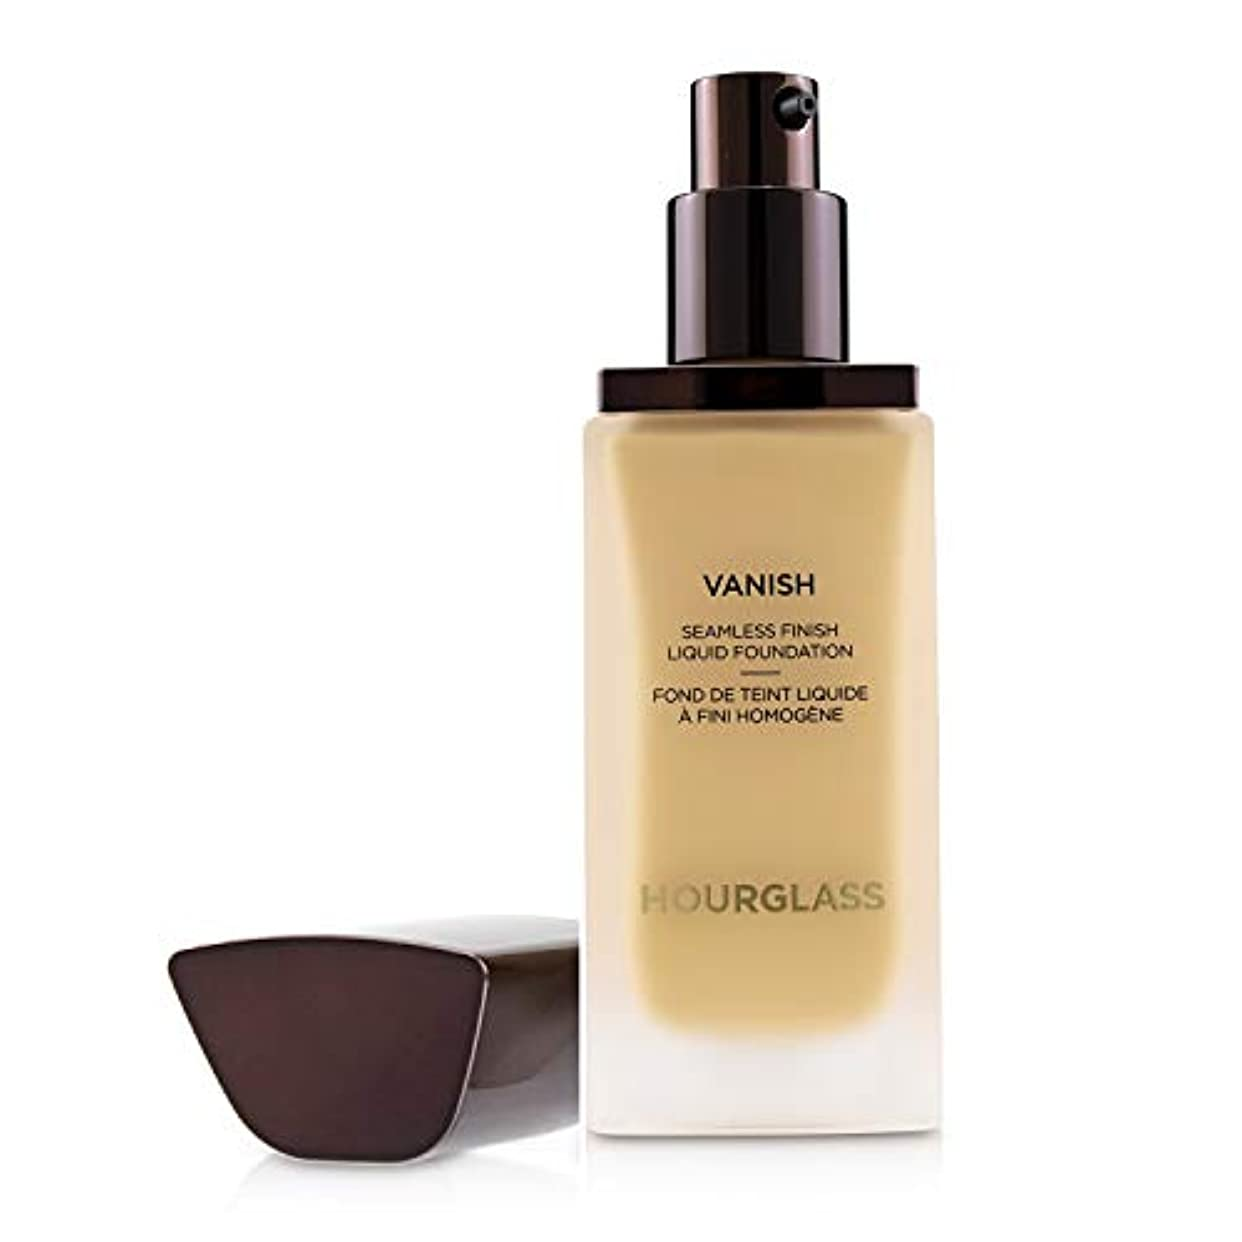 アーサー証人幹アワーグラス Vanish Seamless Finish Liquid Foundation - # Nude 25ml/0.84oz並行輸入品